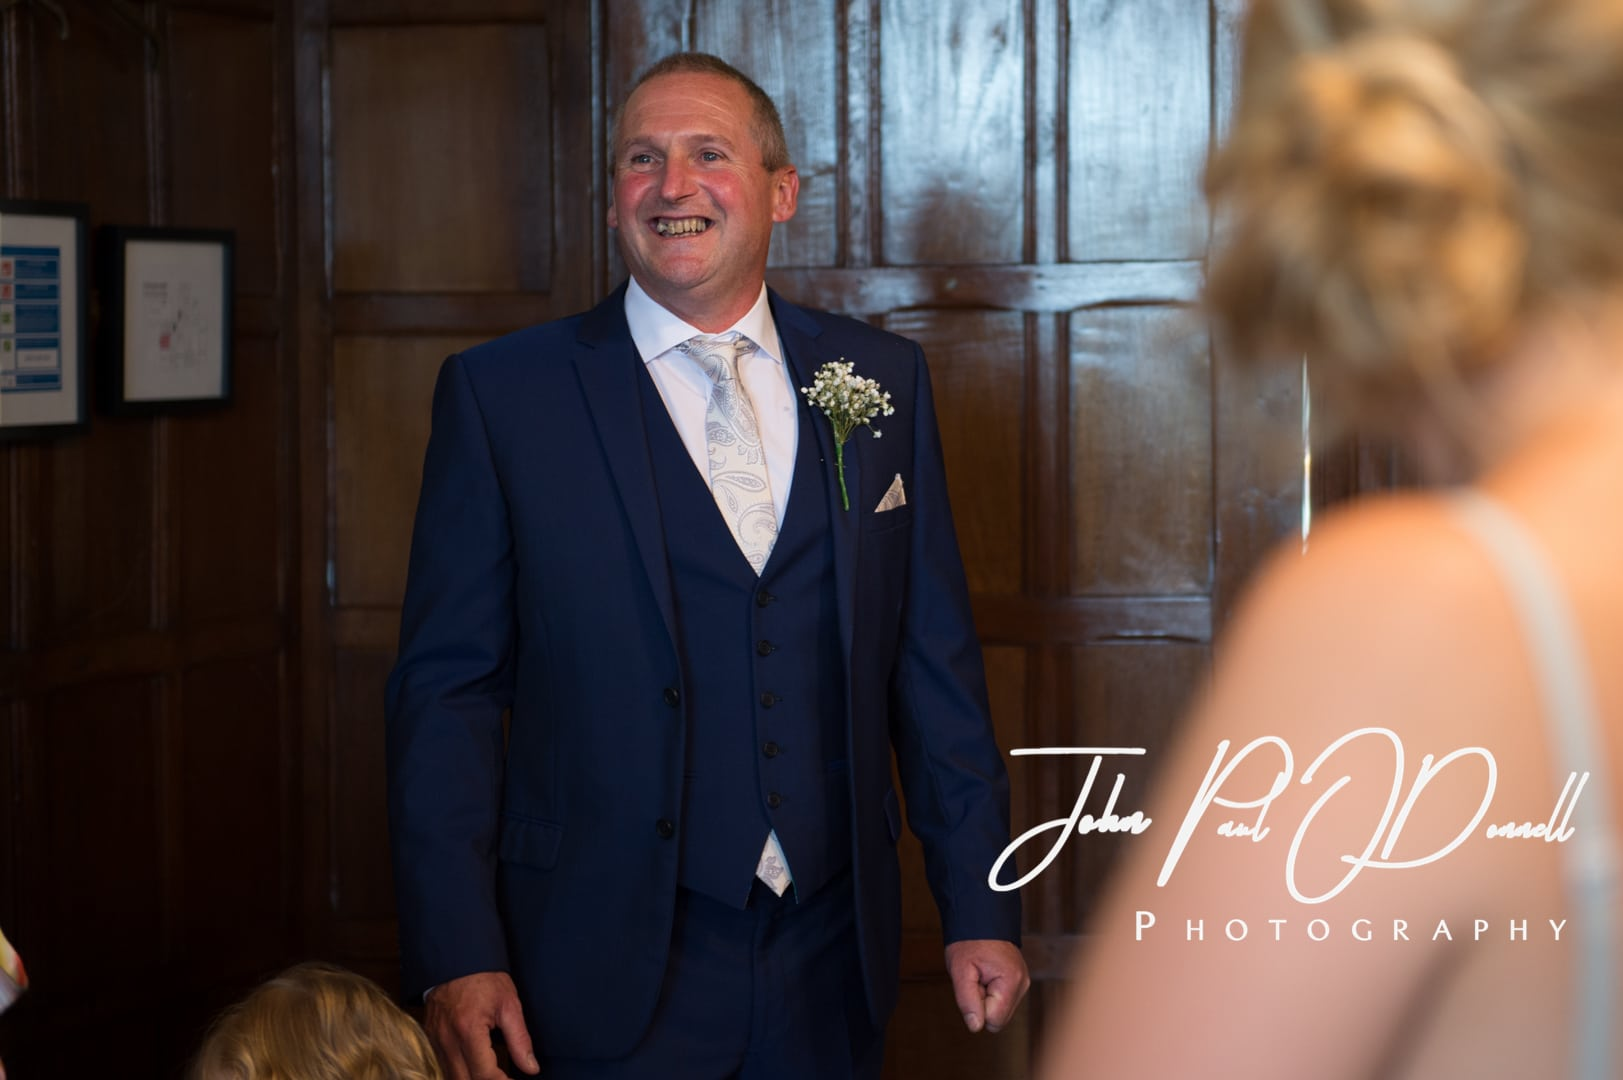 Clare and Josephs wedding at Fanhams Hall Herts